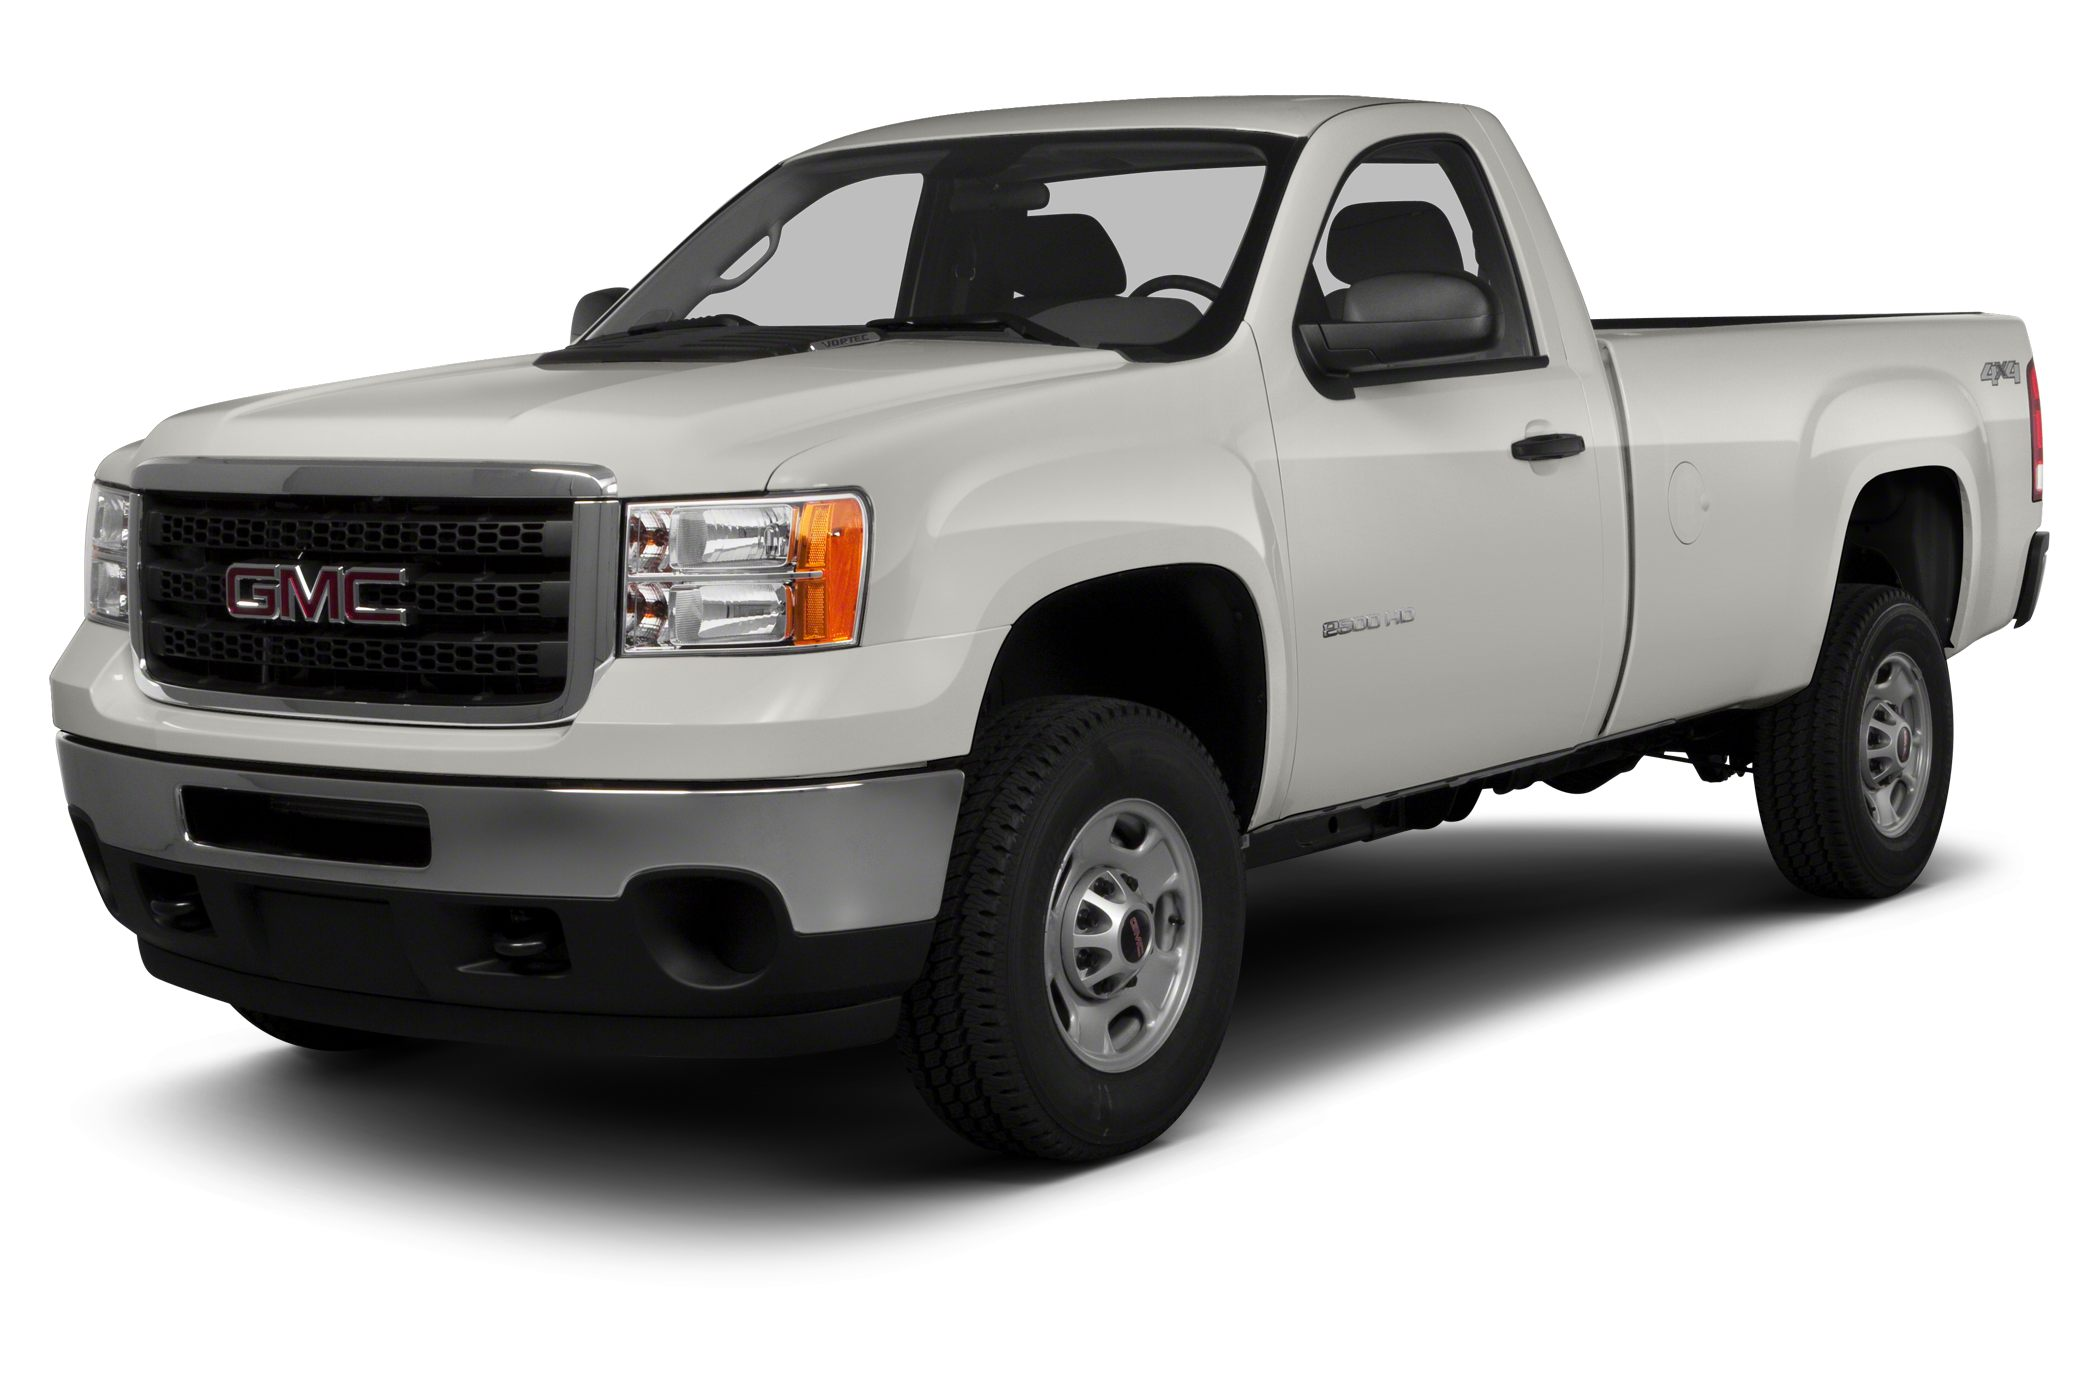 GMC Sierra 2500HD 2014 #7